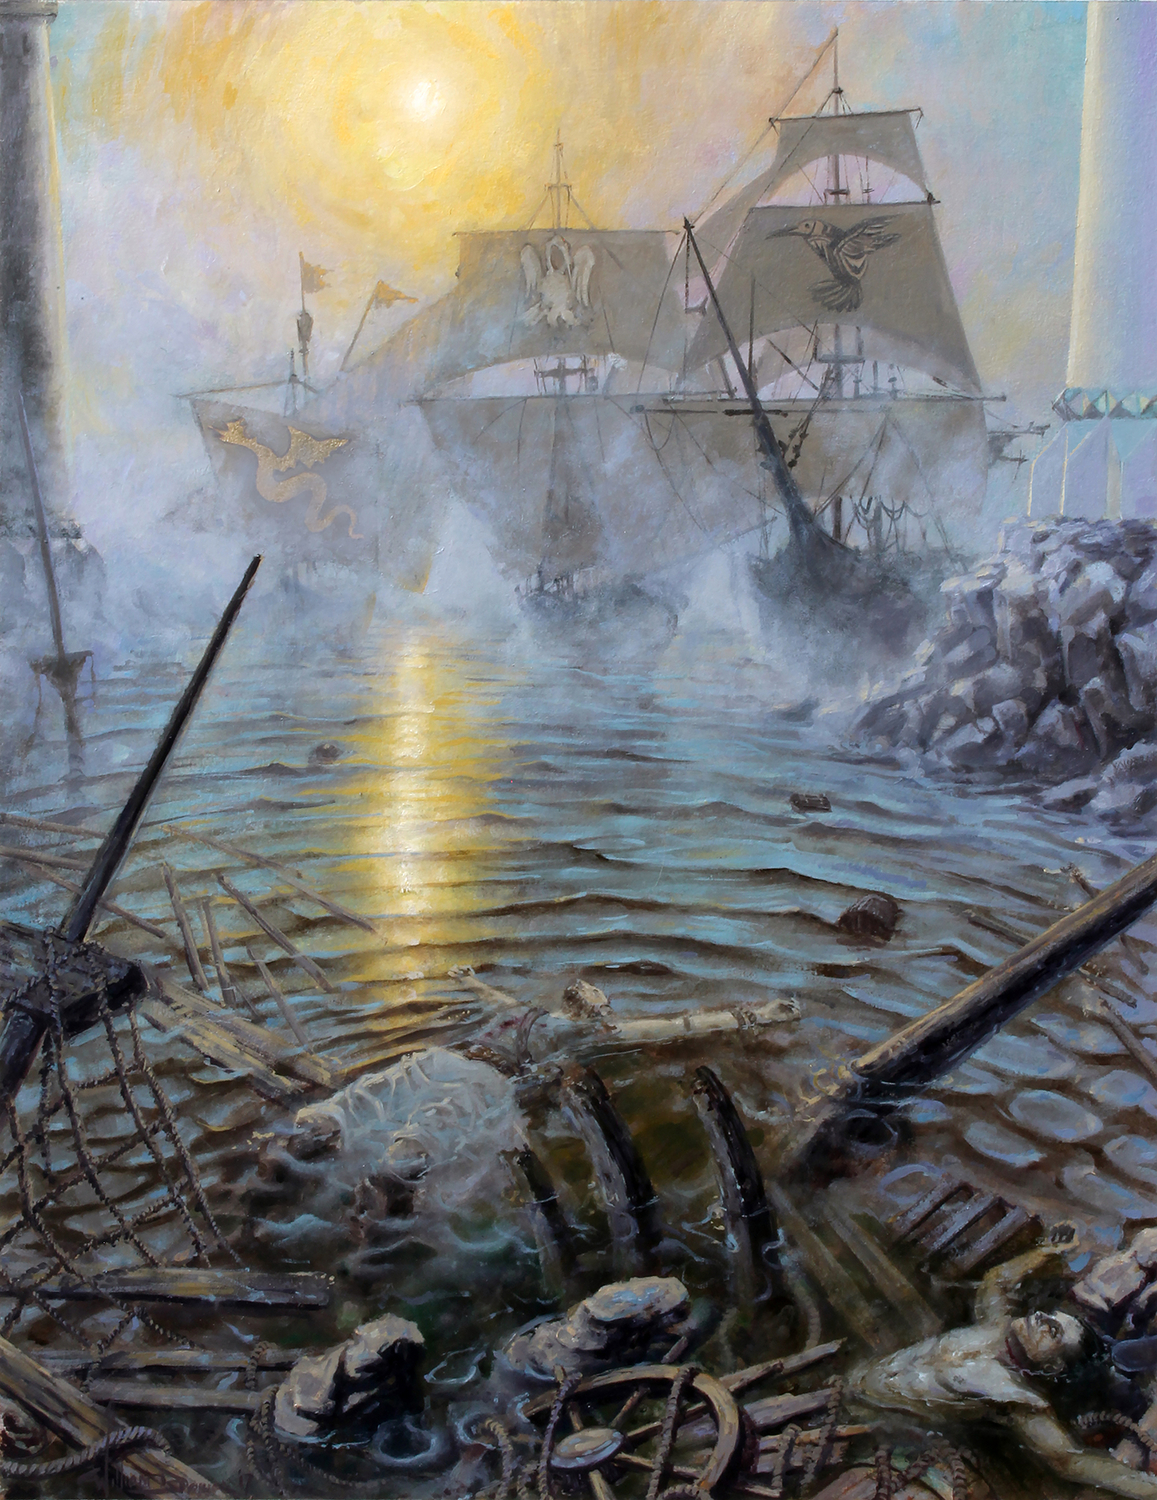 The City Walls  Artwork by William Brown